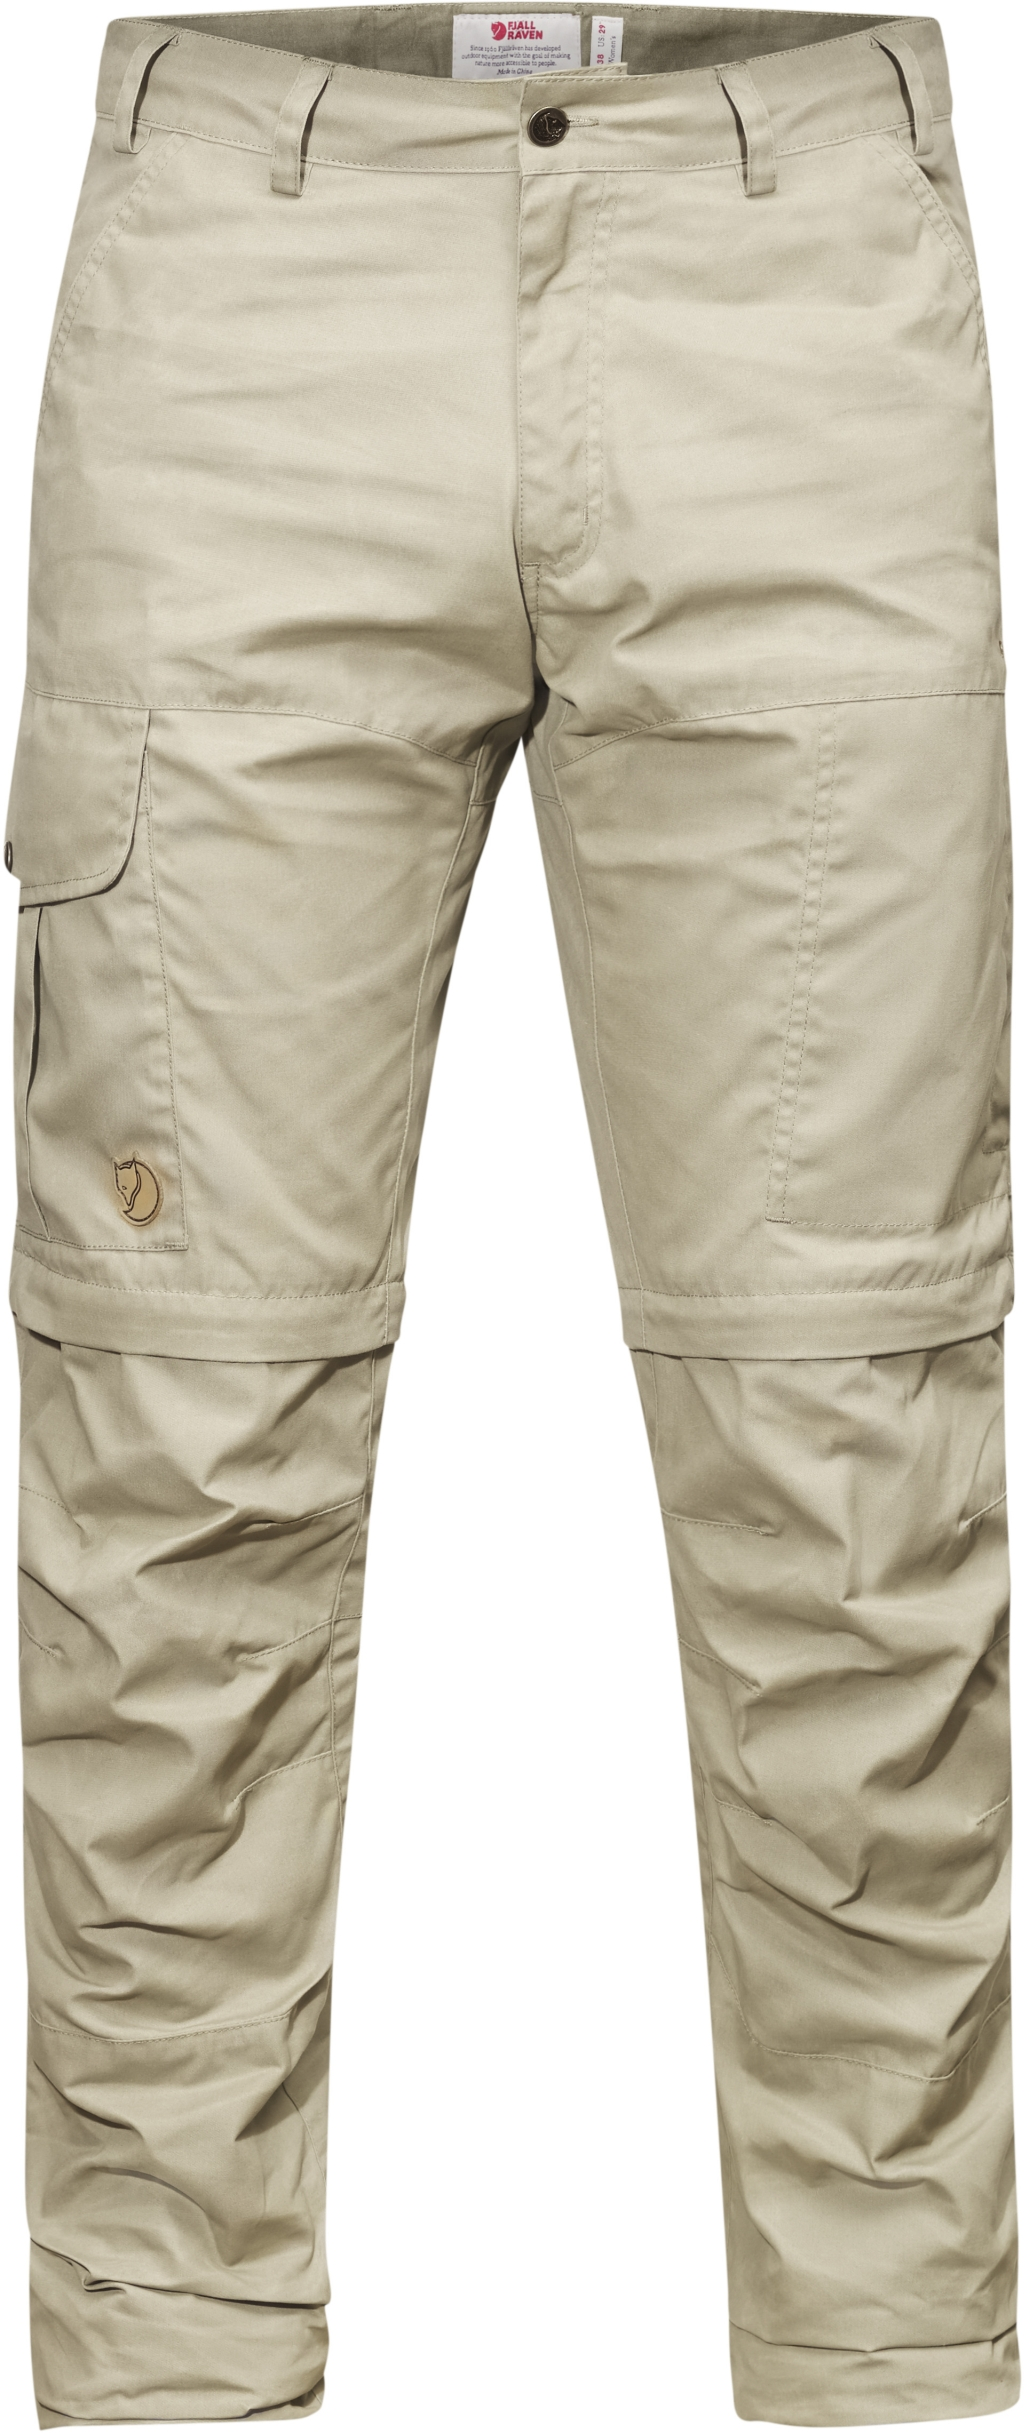 FjallRaven Karl Pro Zip-Off Trousers Light Khaki-30